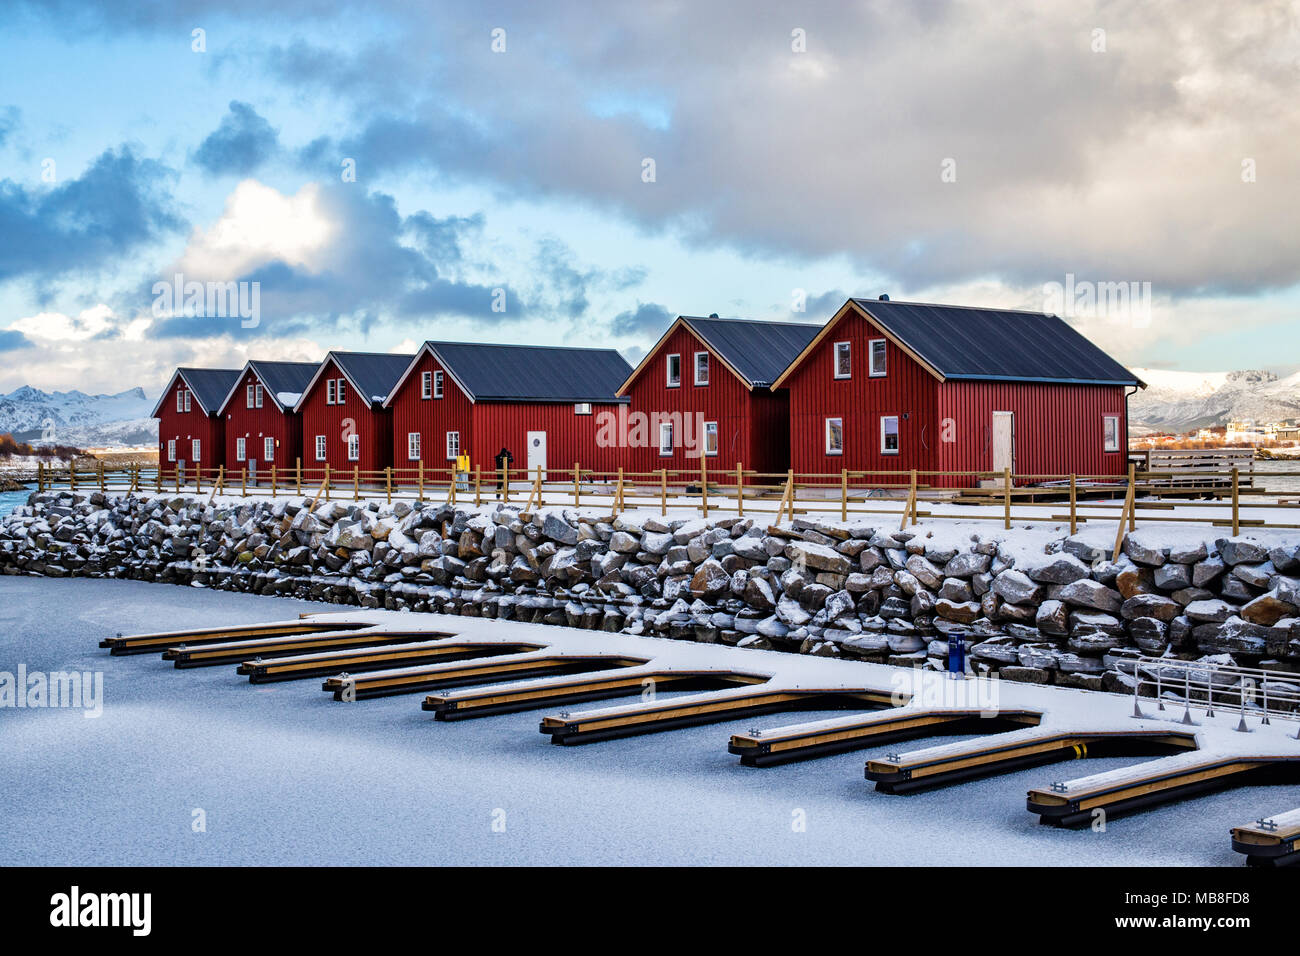 Lofoten Islands, Norway, 03-11-2018, village - Stock Image